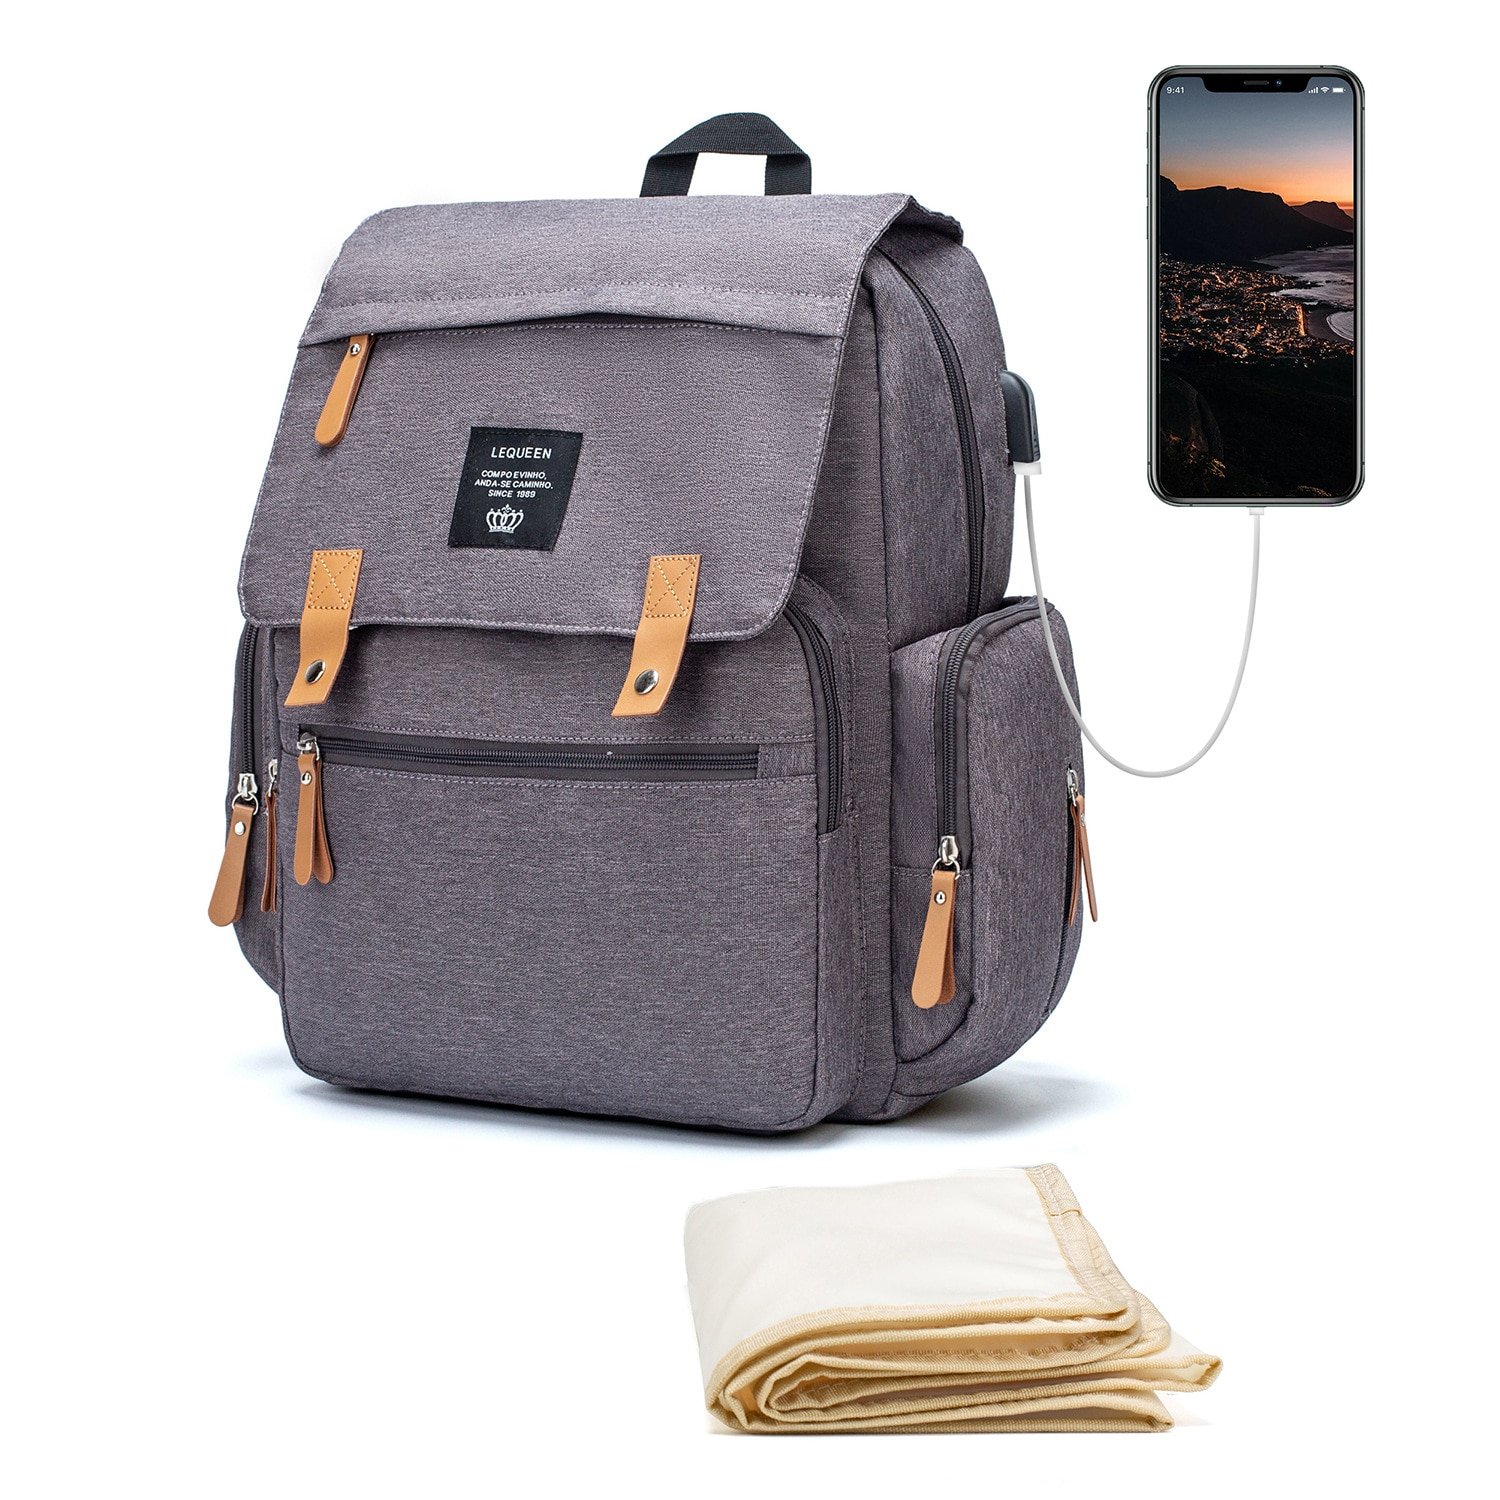 Gray Fashion Baby Bag For Mommy Diaper Bag Backpack Travel Waterproof Nappy Changing Maternity Bags